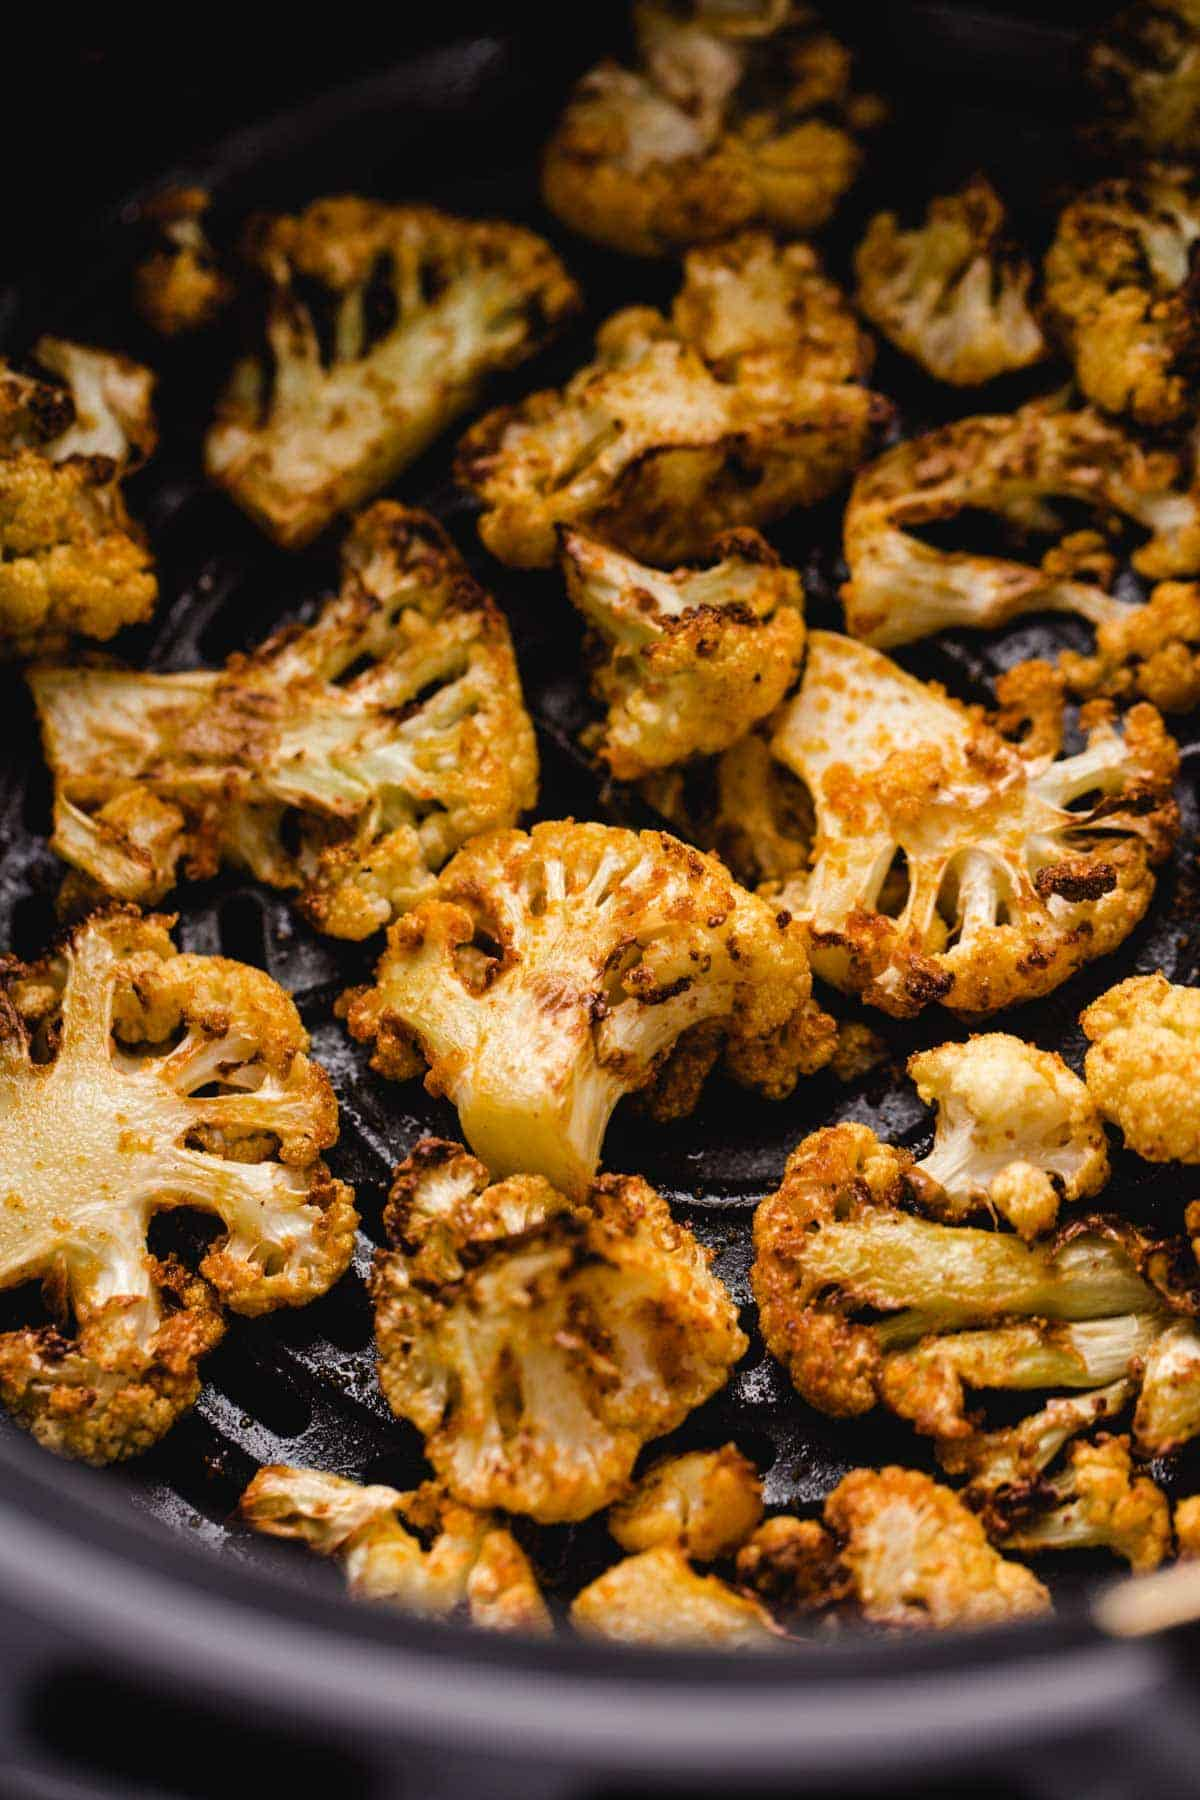 Roasted cauliflower florets in an air fryer basket.